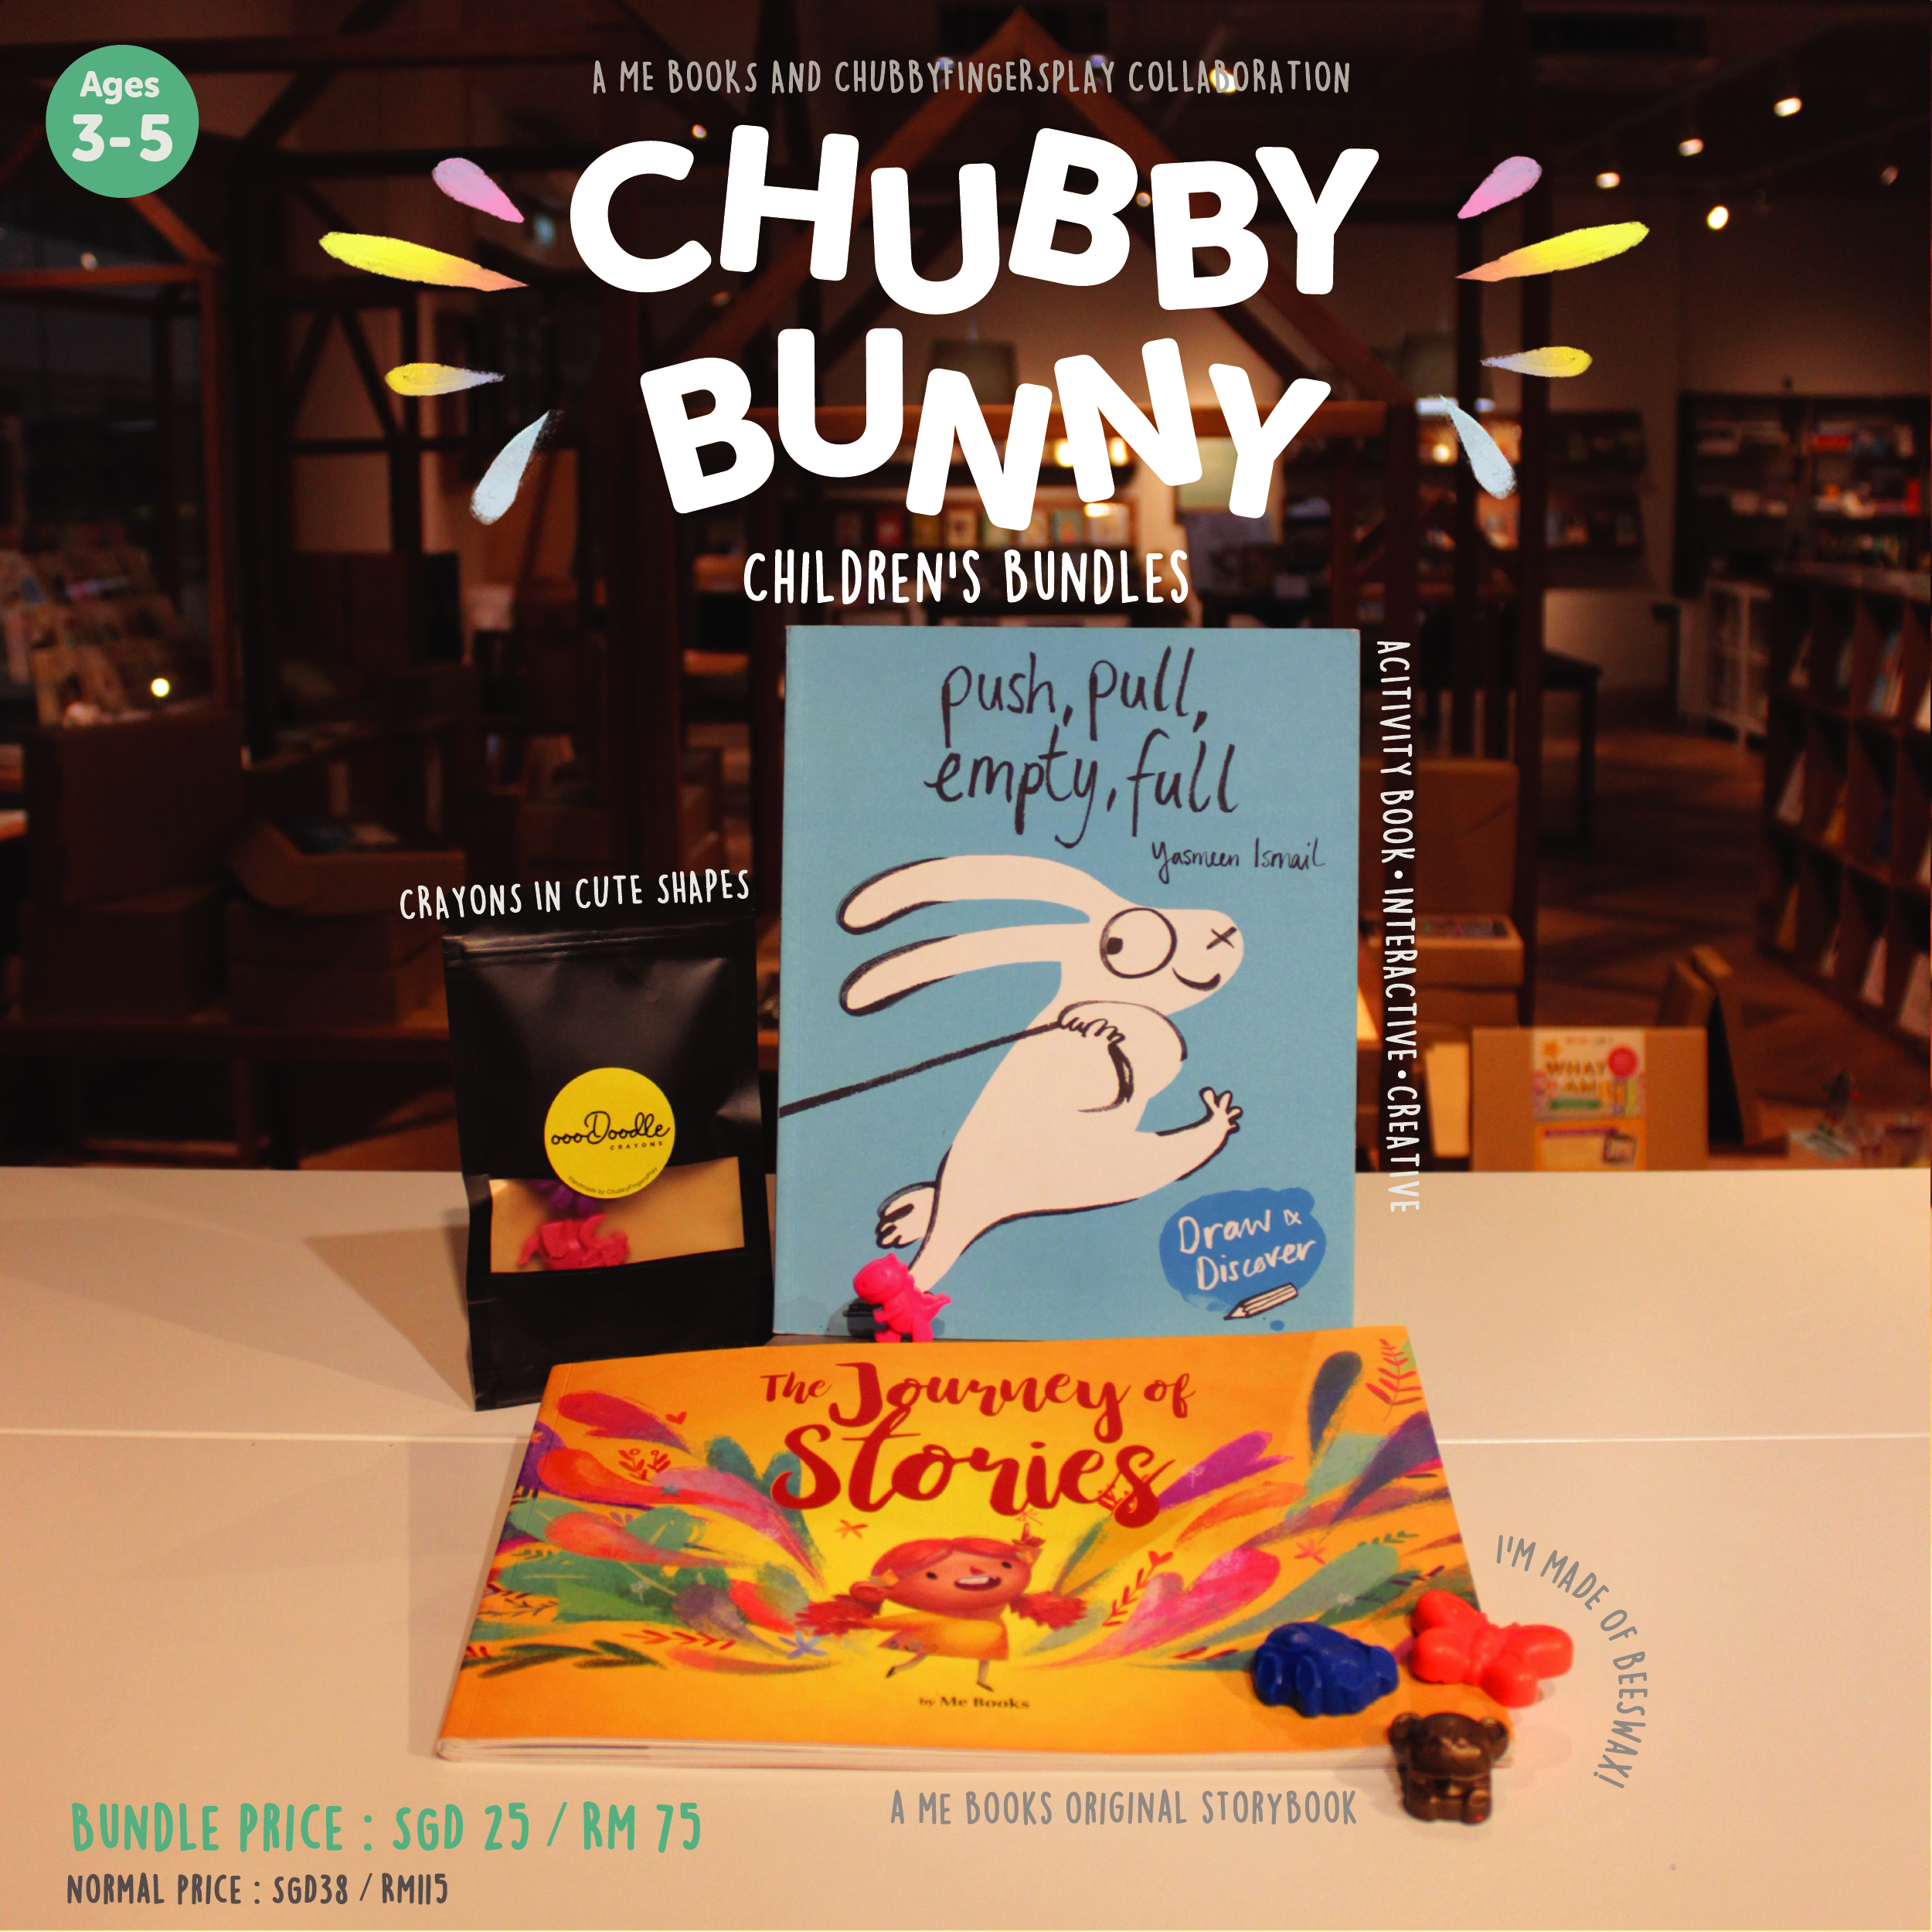 Chubby Bunny Children's Bundle